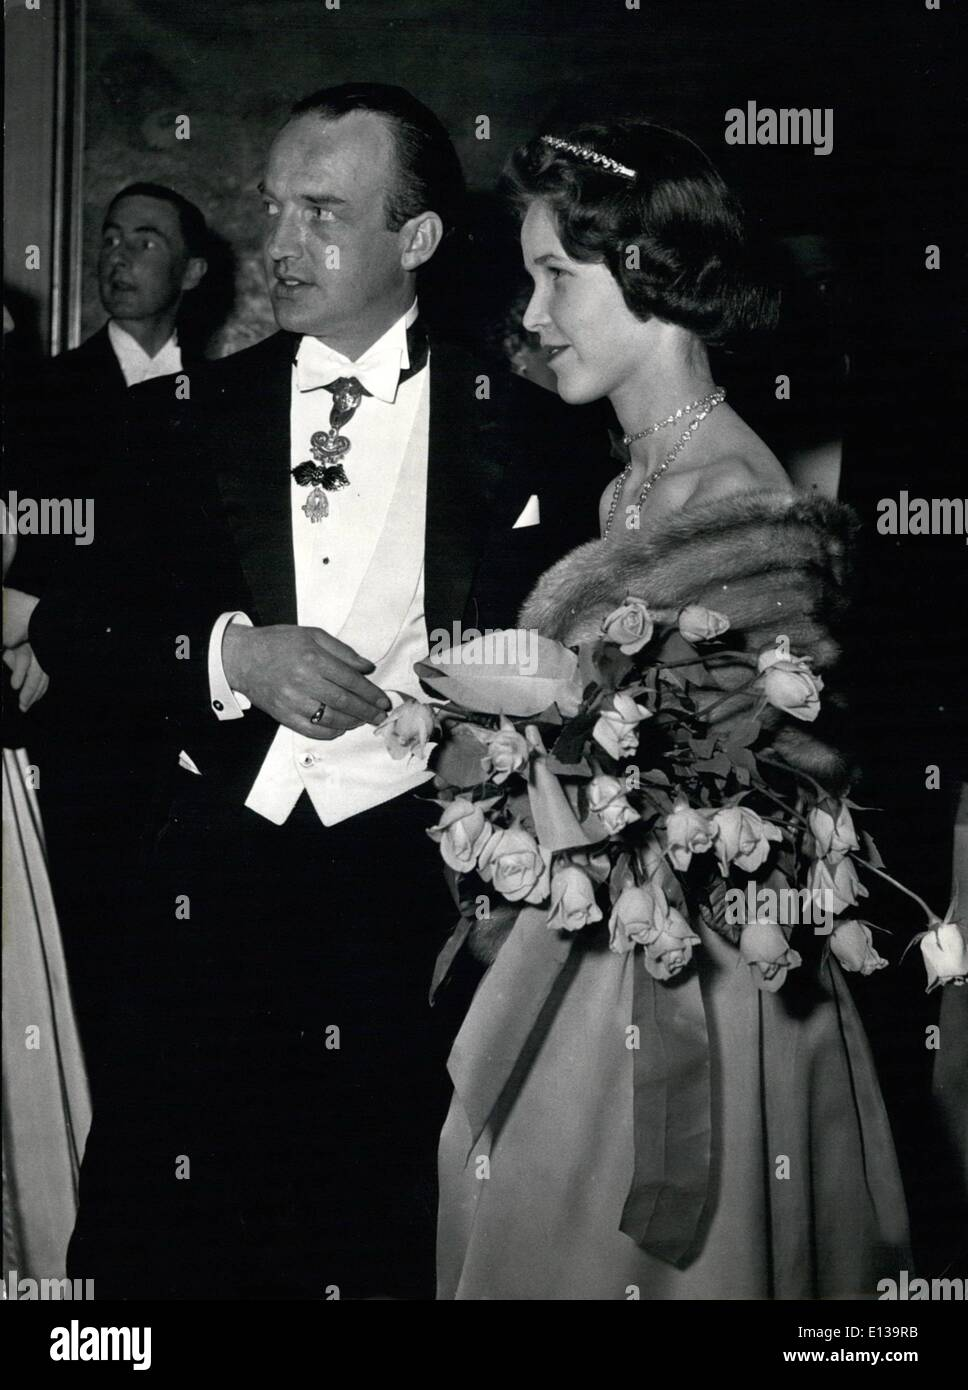 Feb. 29, 2012 - Nuptial-Eve at Munich Hotel ''Four Seasons'' according to the wedding of Countess Helen of Teorringjettenbach and Arch Duke Ferdinand of Austria. Photo shows Countess Helen of Toerring and Archduke Ferdinand of Austria. Stock Photo